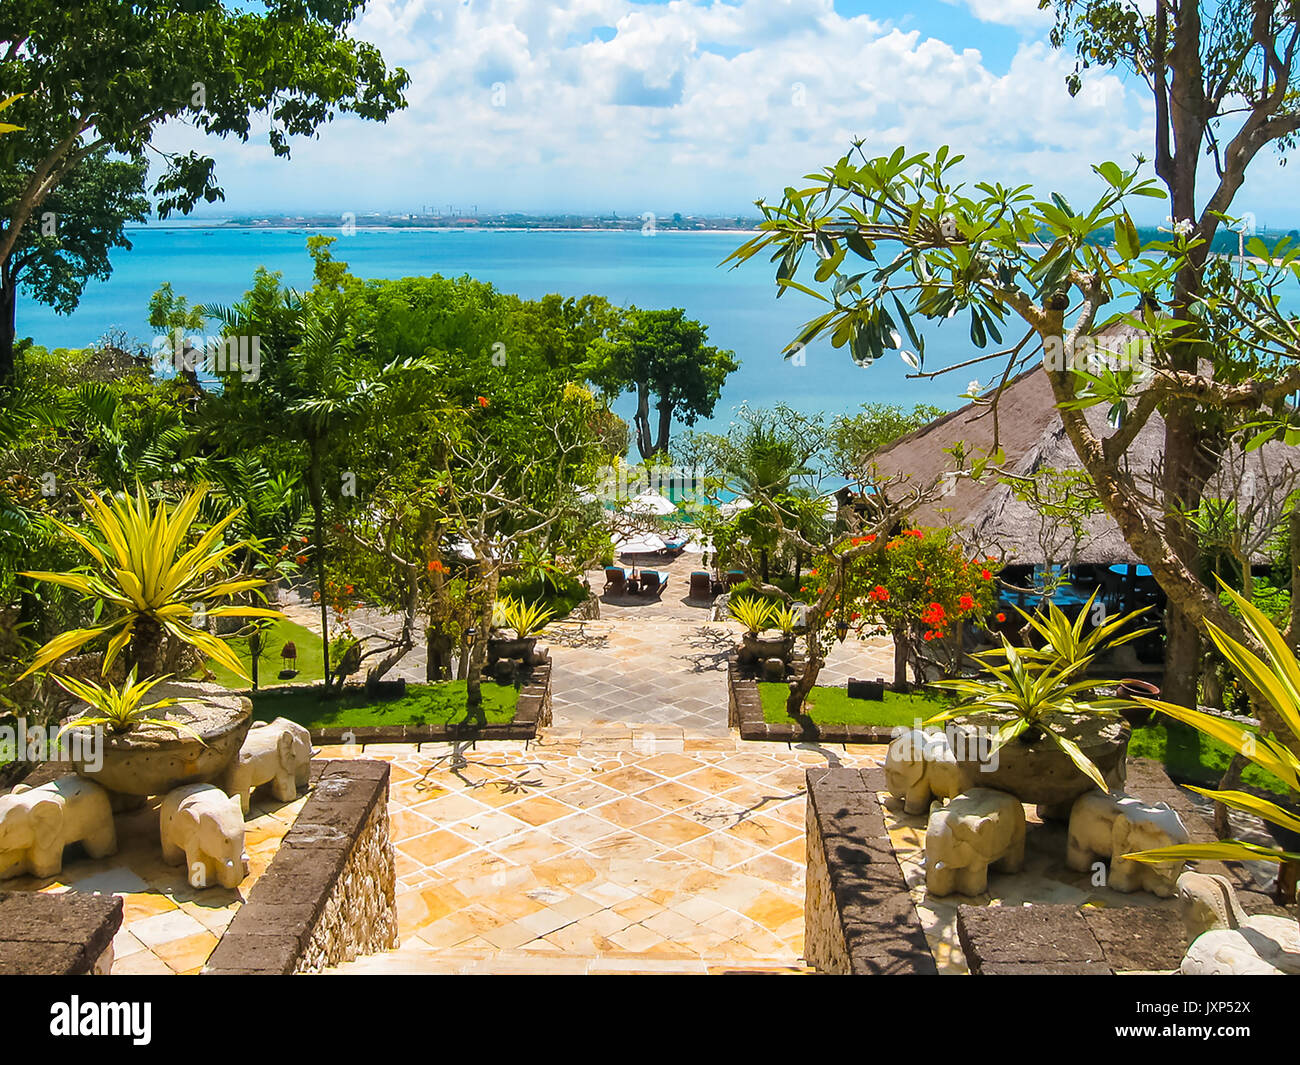 All Seasons Hotel Bali High Resolution Stock Photography And Images Alamy